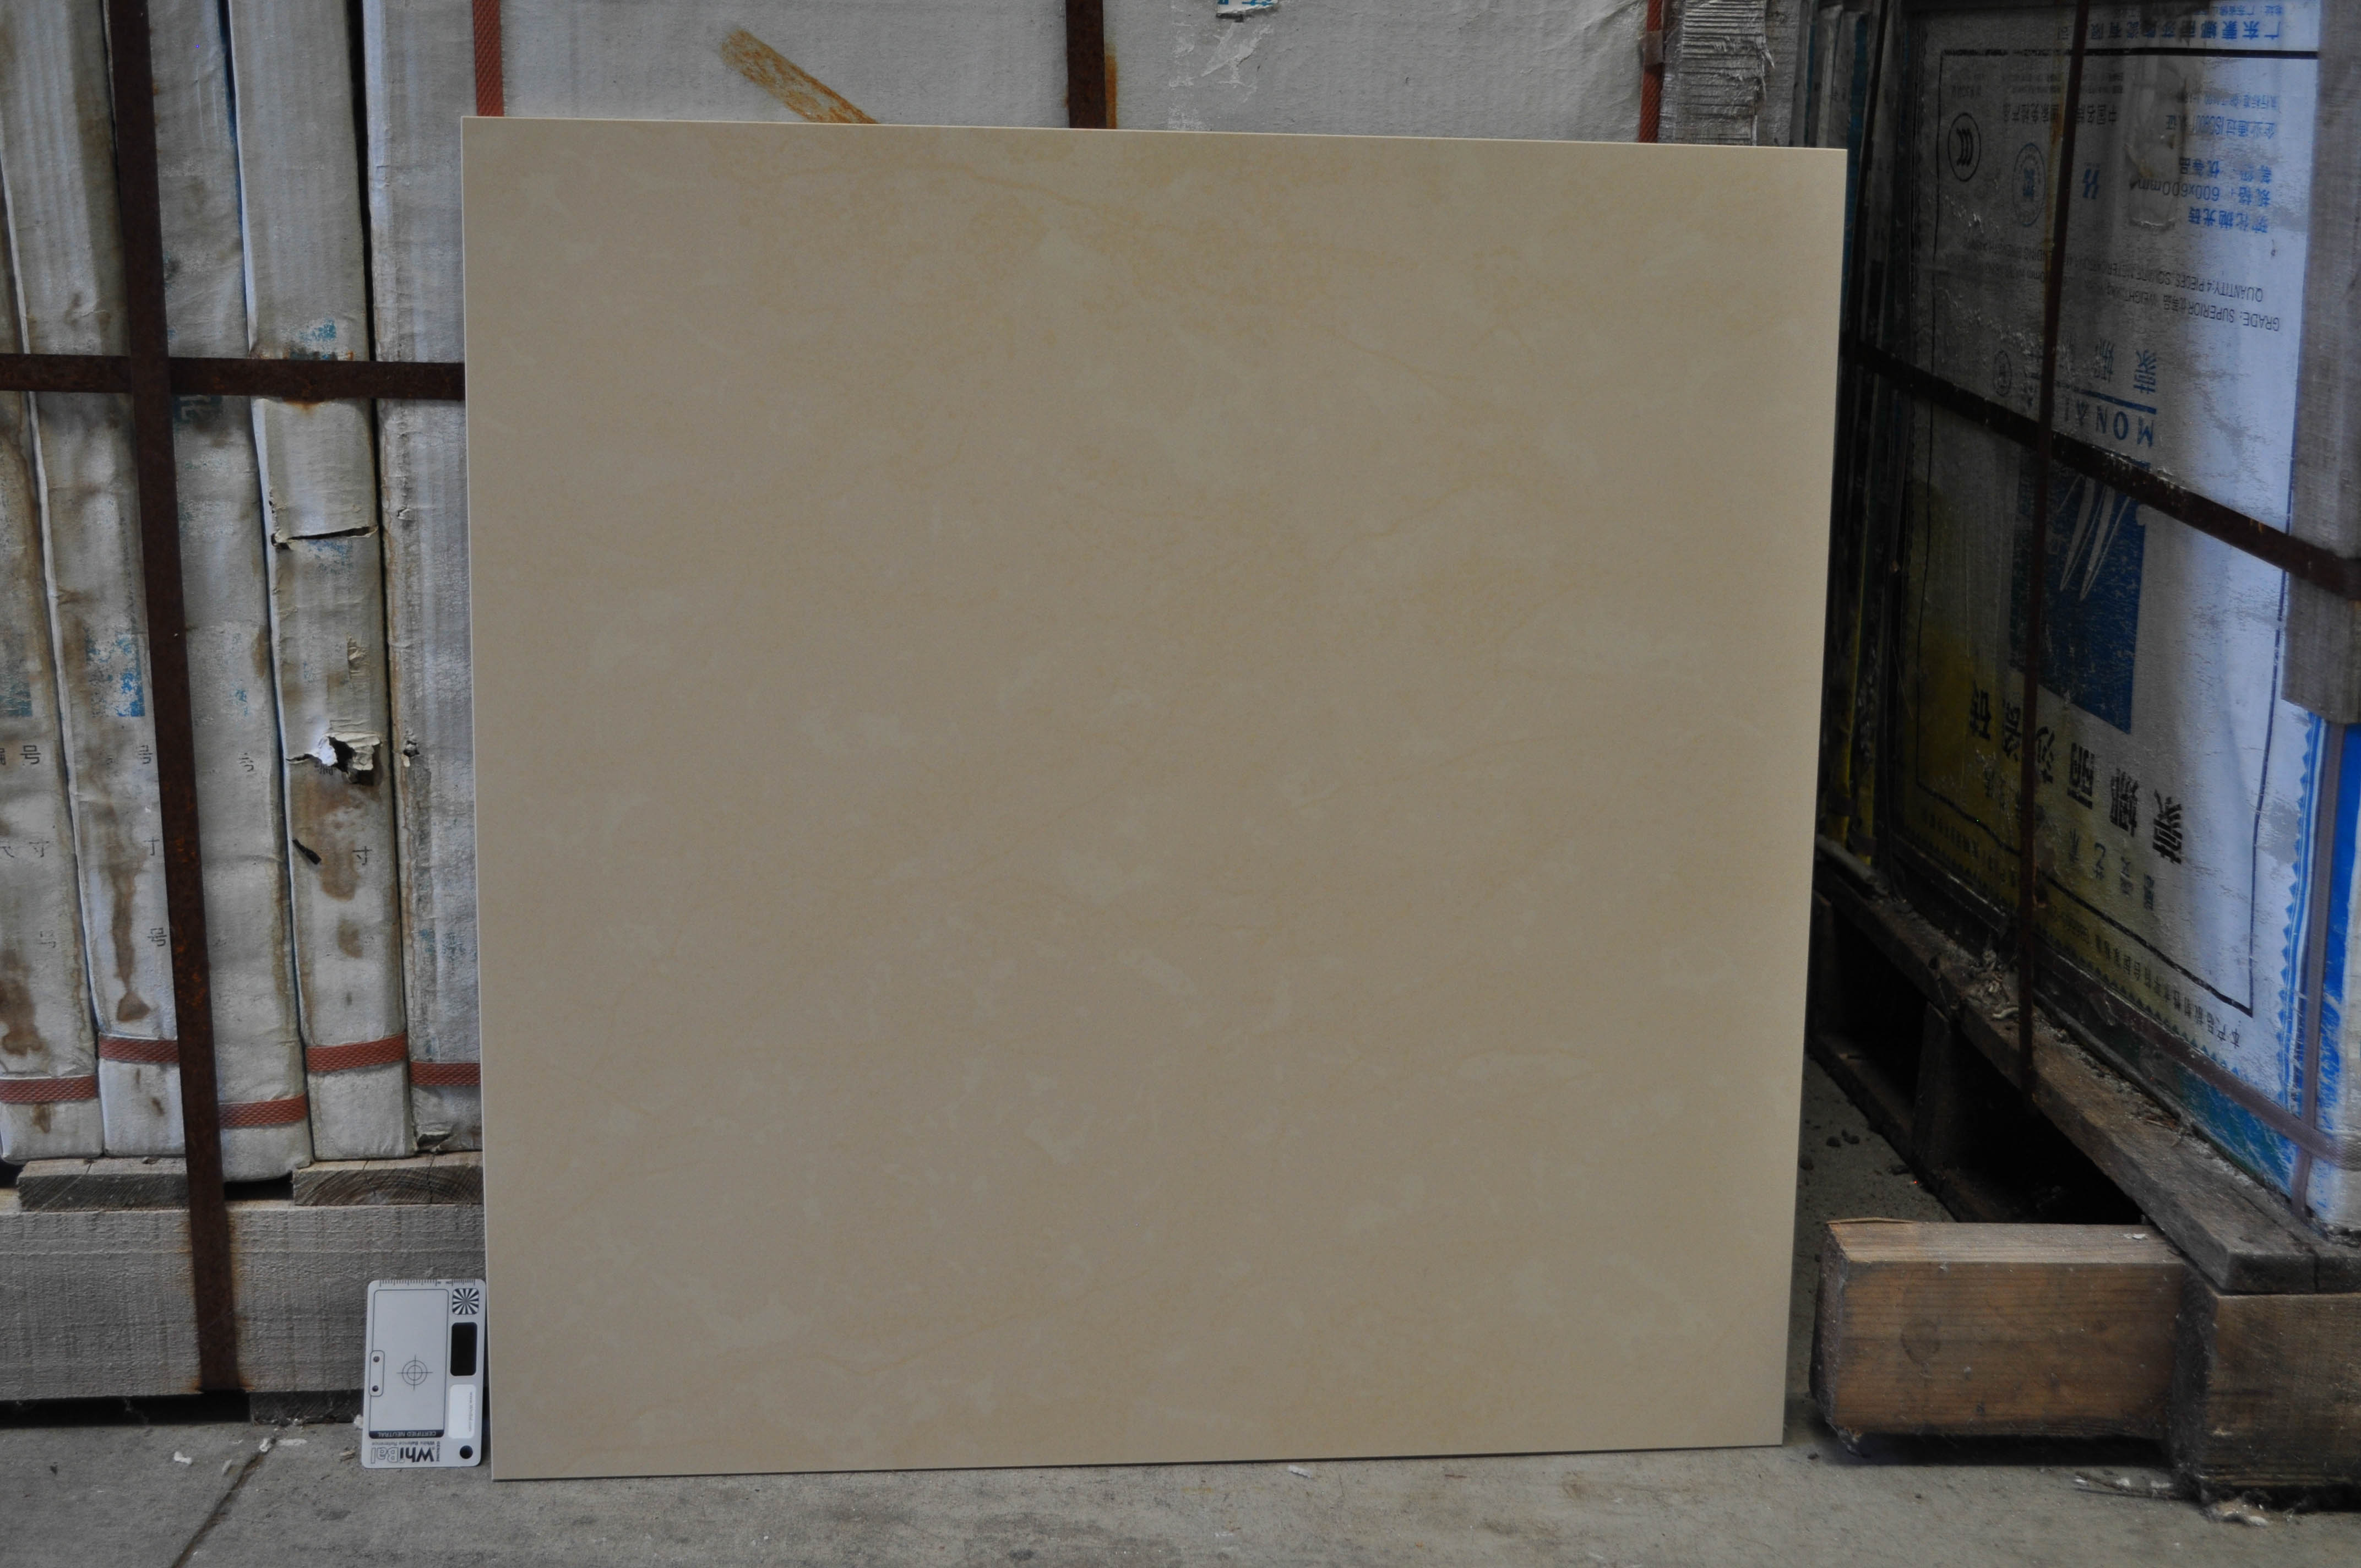 a sales sample of a 60cm x 60cm porcelain tile available for purchase from Concord Floors